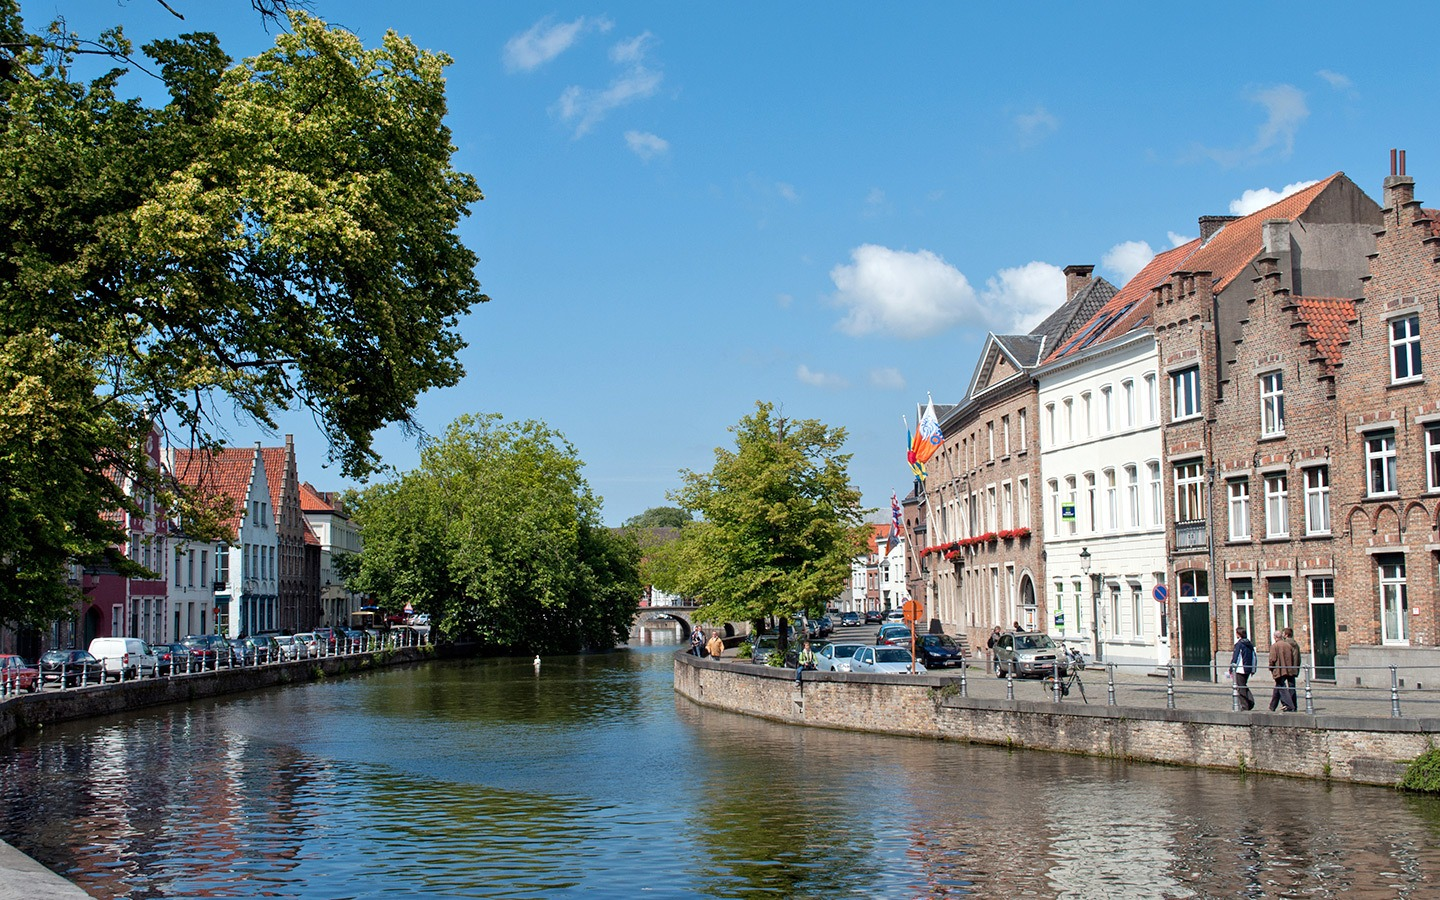 Along the canals in Bruges